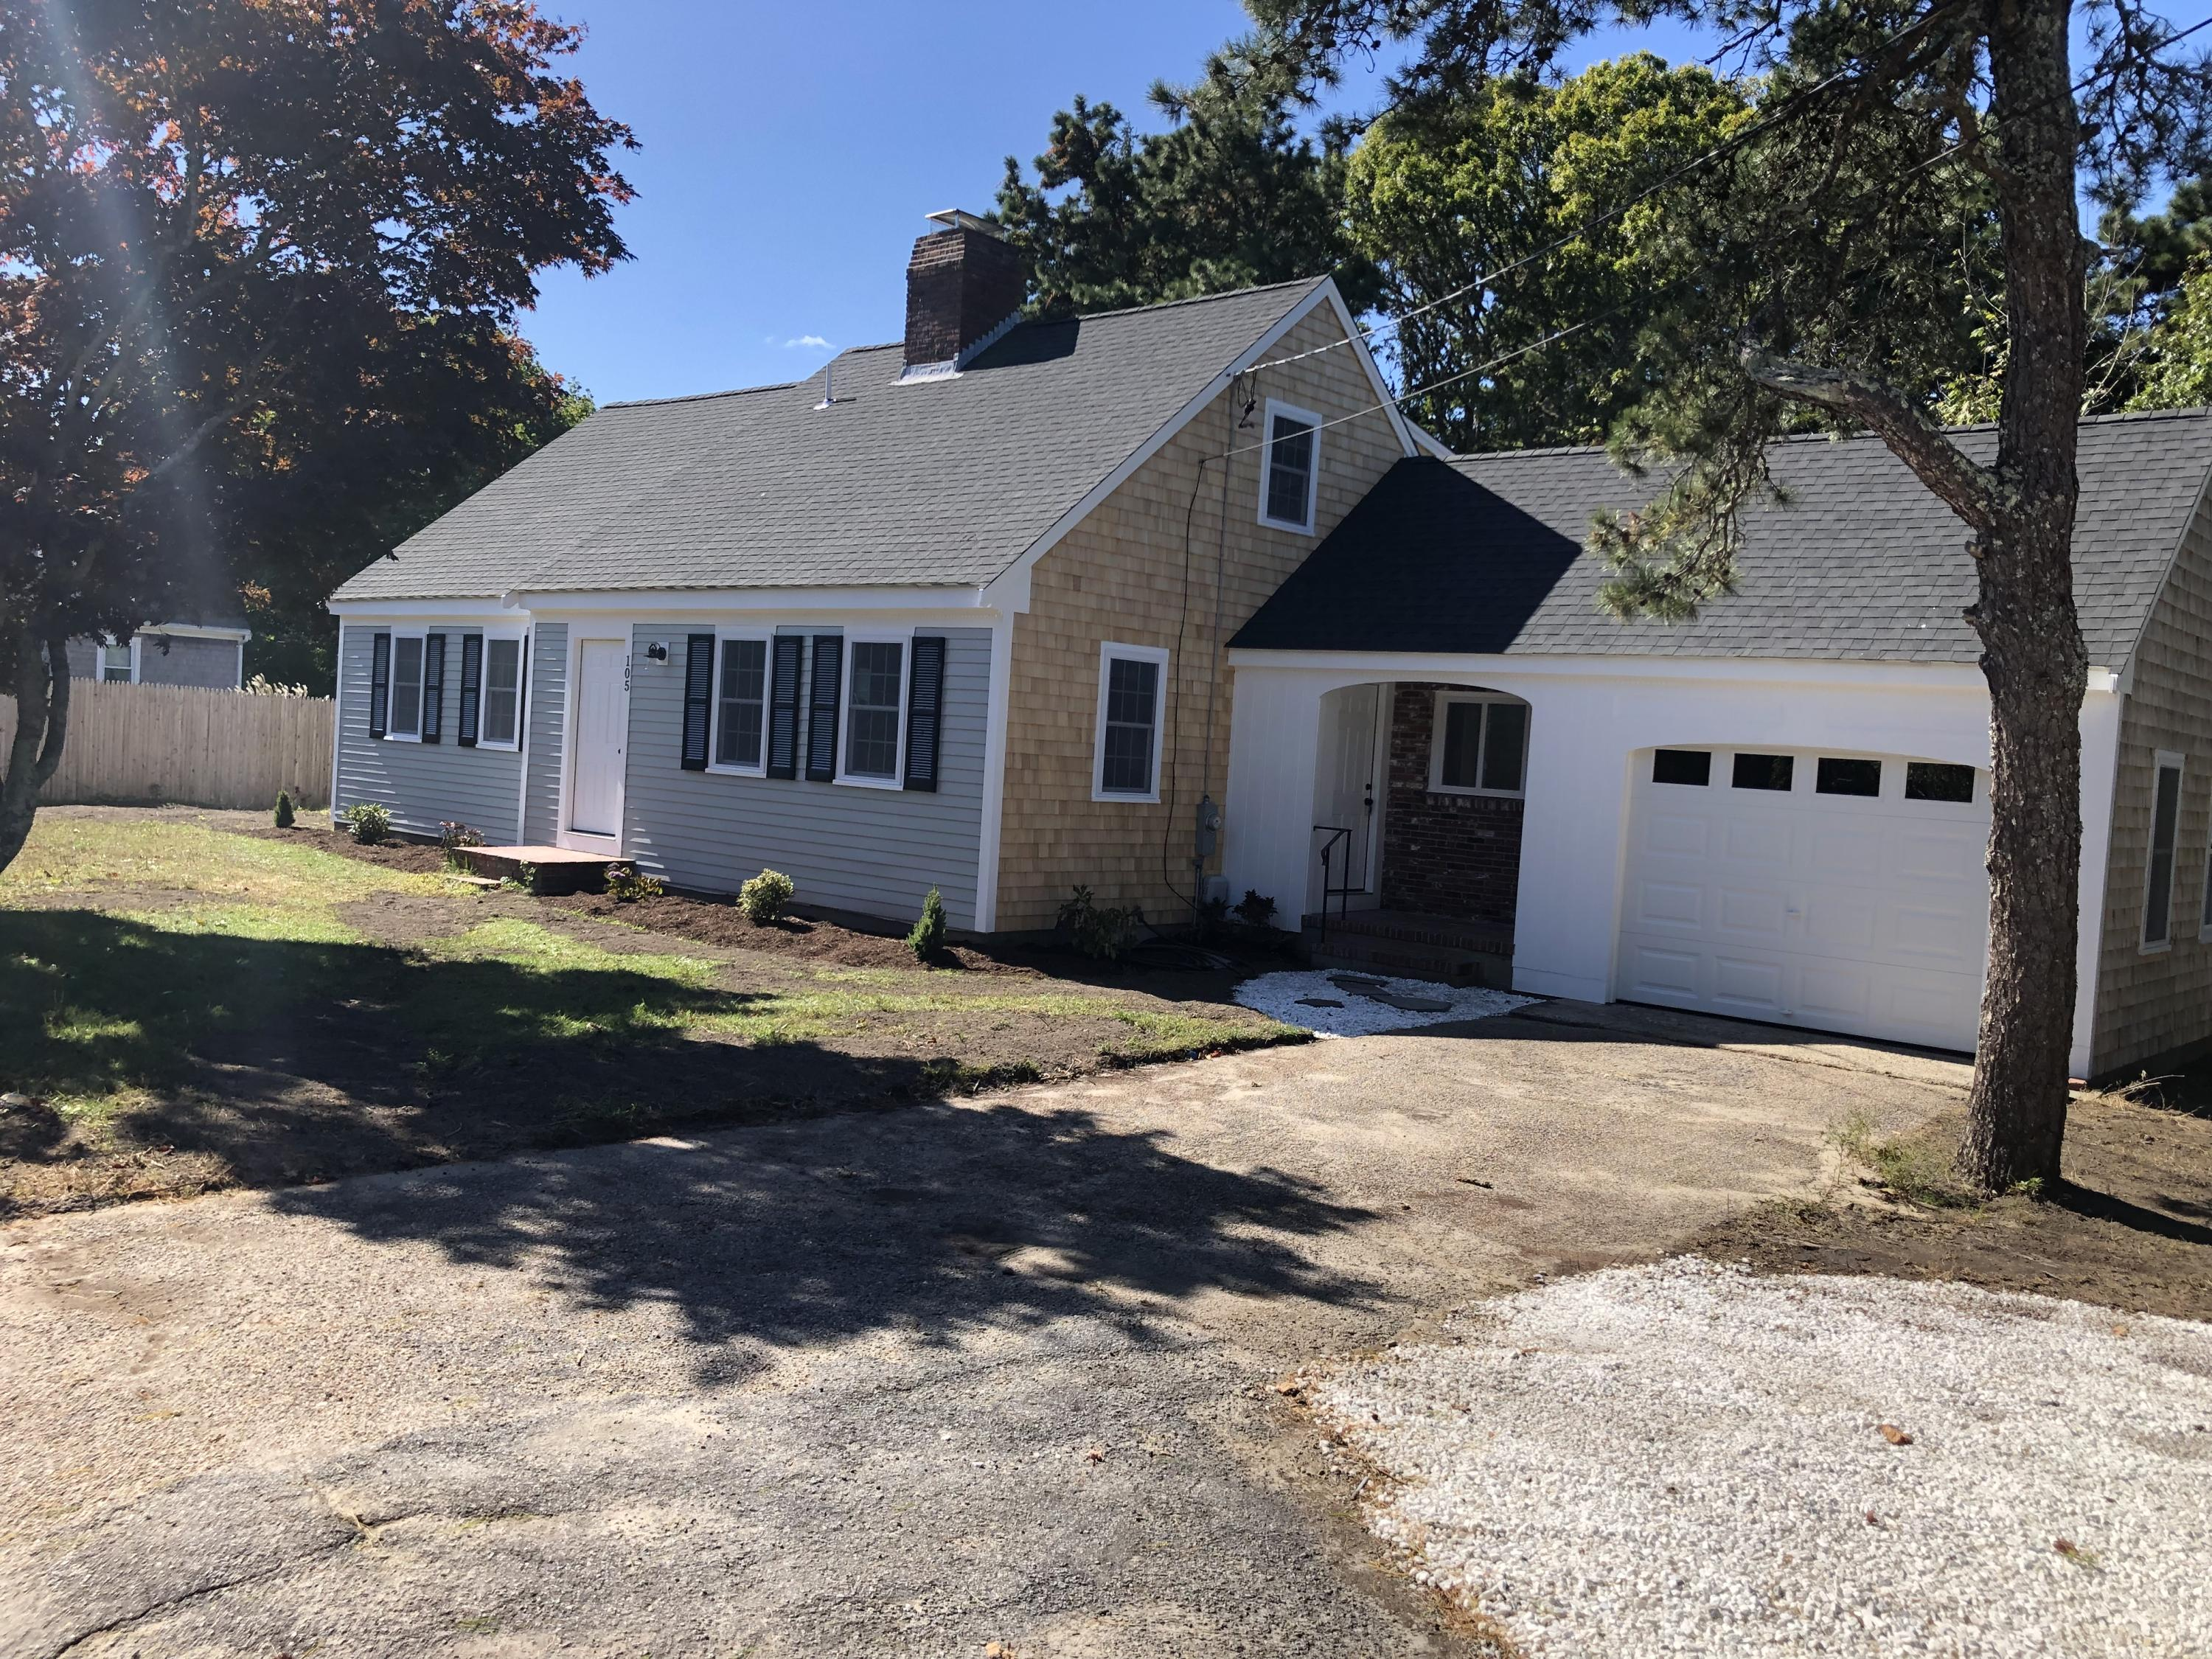 105 Old Bass River Road, South Dennis MA, 02660